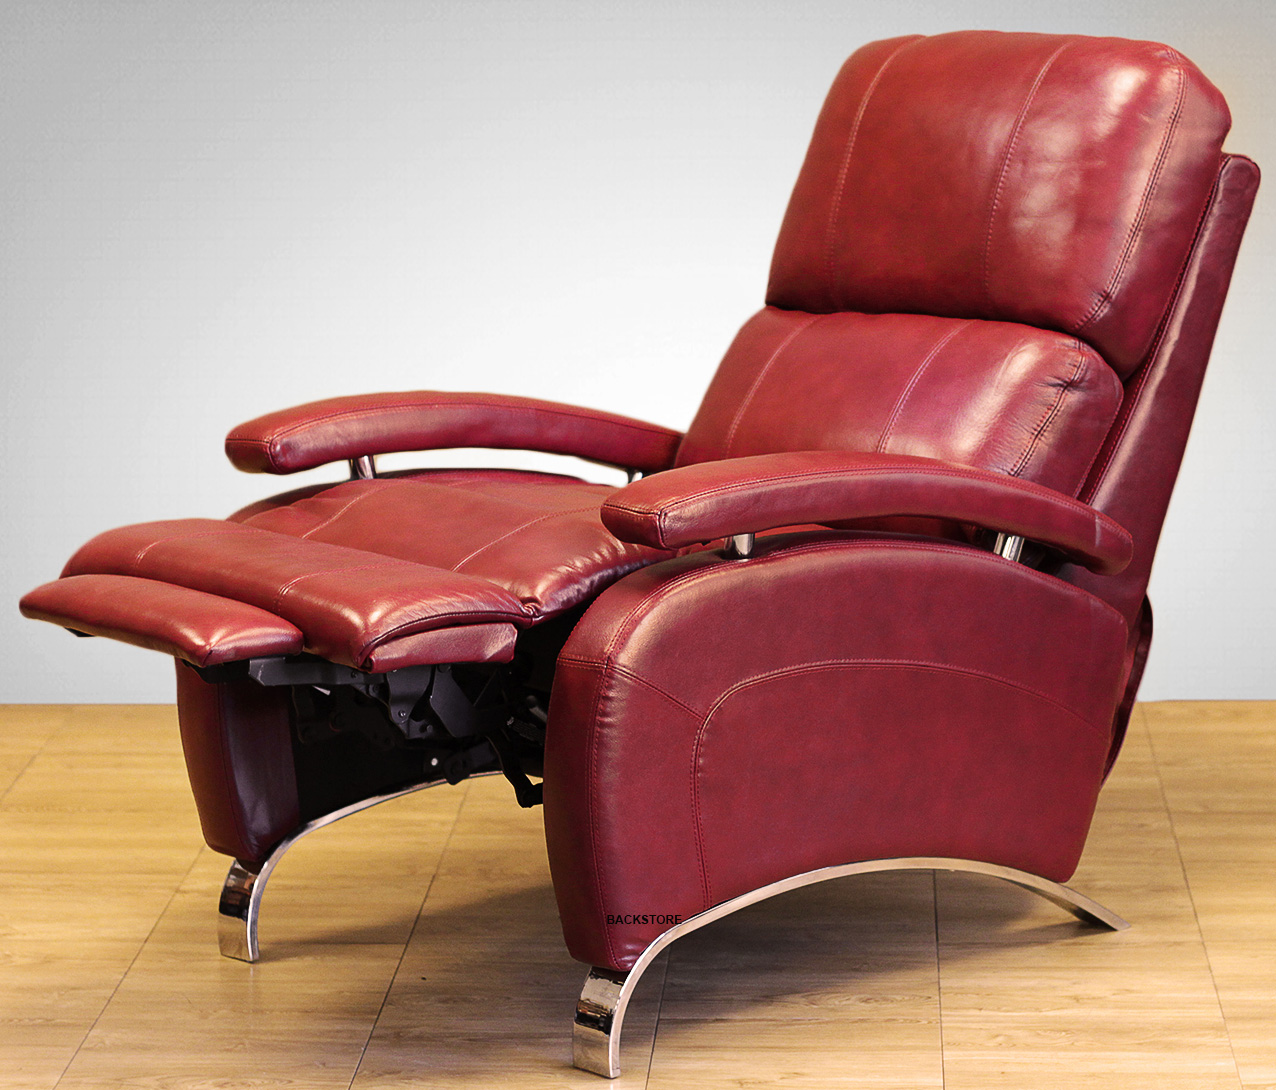 Barcalounger Oracle II Genuine Leather Recliner Lounger Chair ...